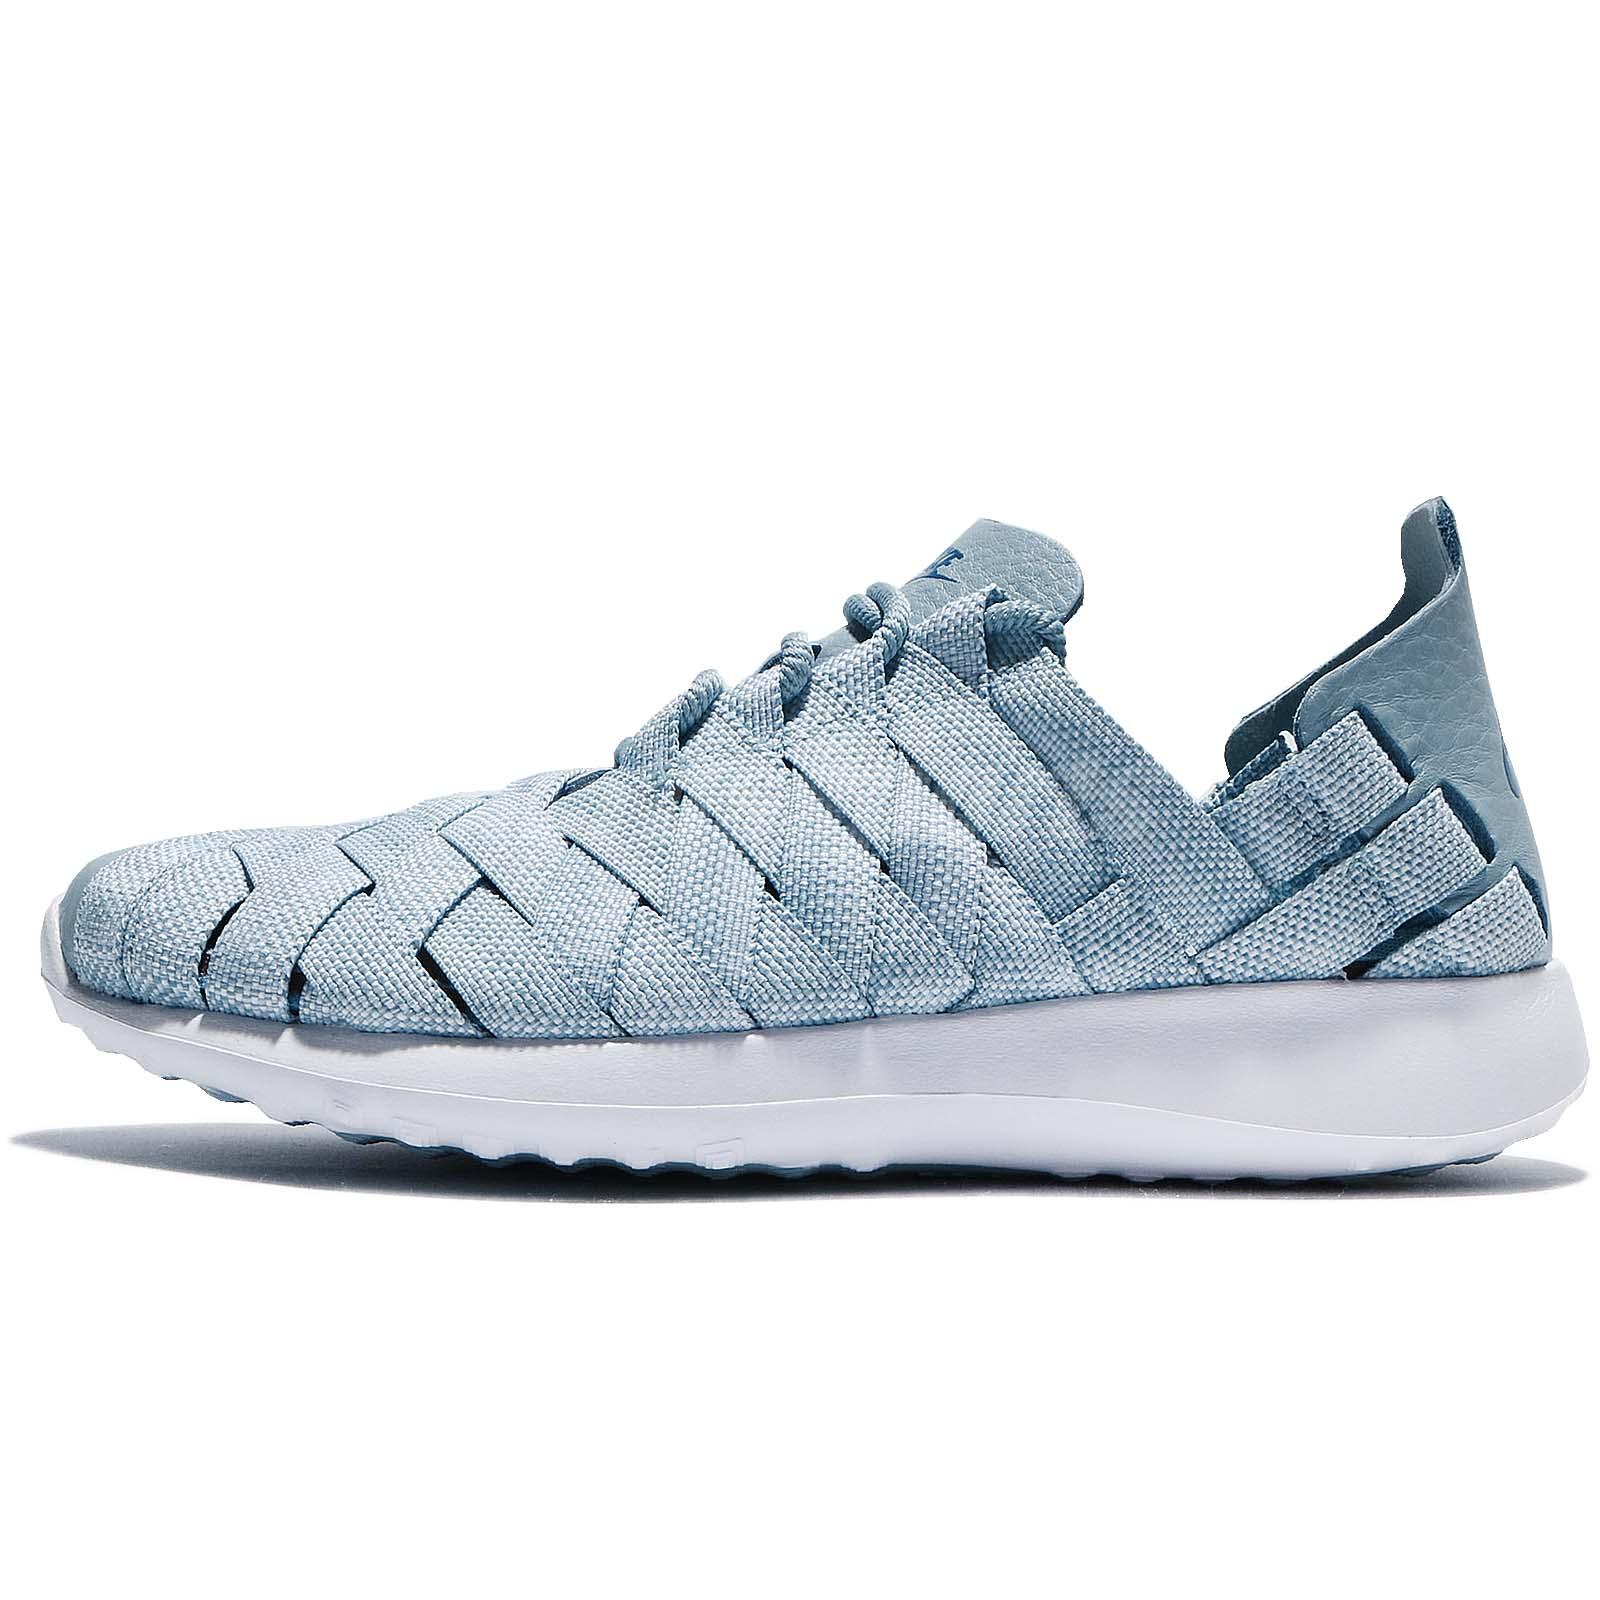 wmns nike juvenate woven prm premium mica blue women shoes. Black Bedroom Furniture Sets. Home Design Ideas